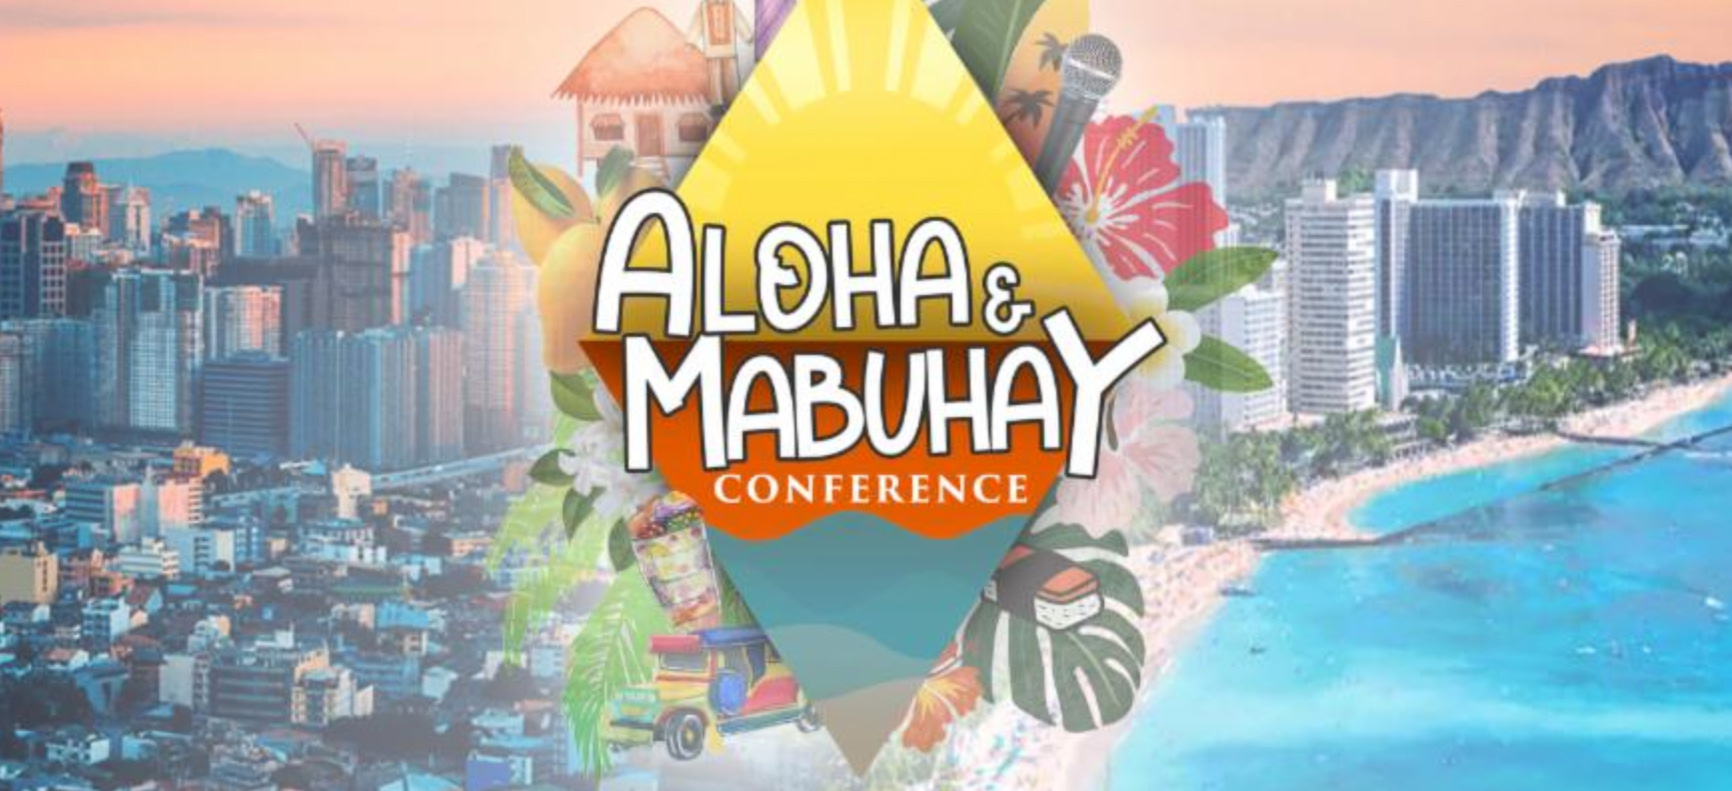 Public Invited To Attend Virtual Aloha & Mabuhay Conference Oct. 13 & 14